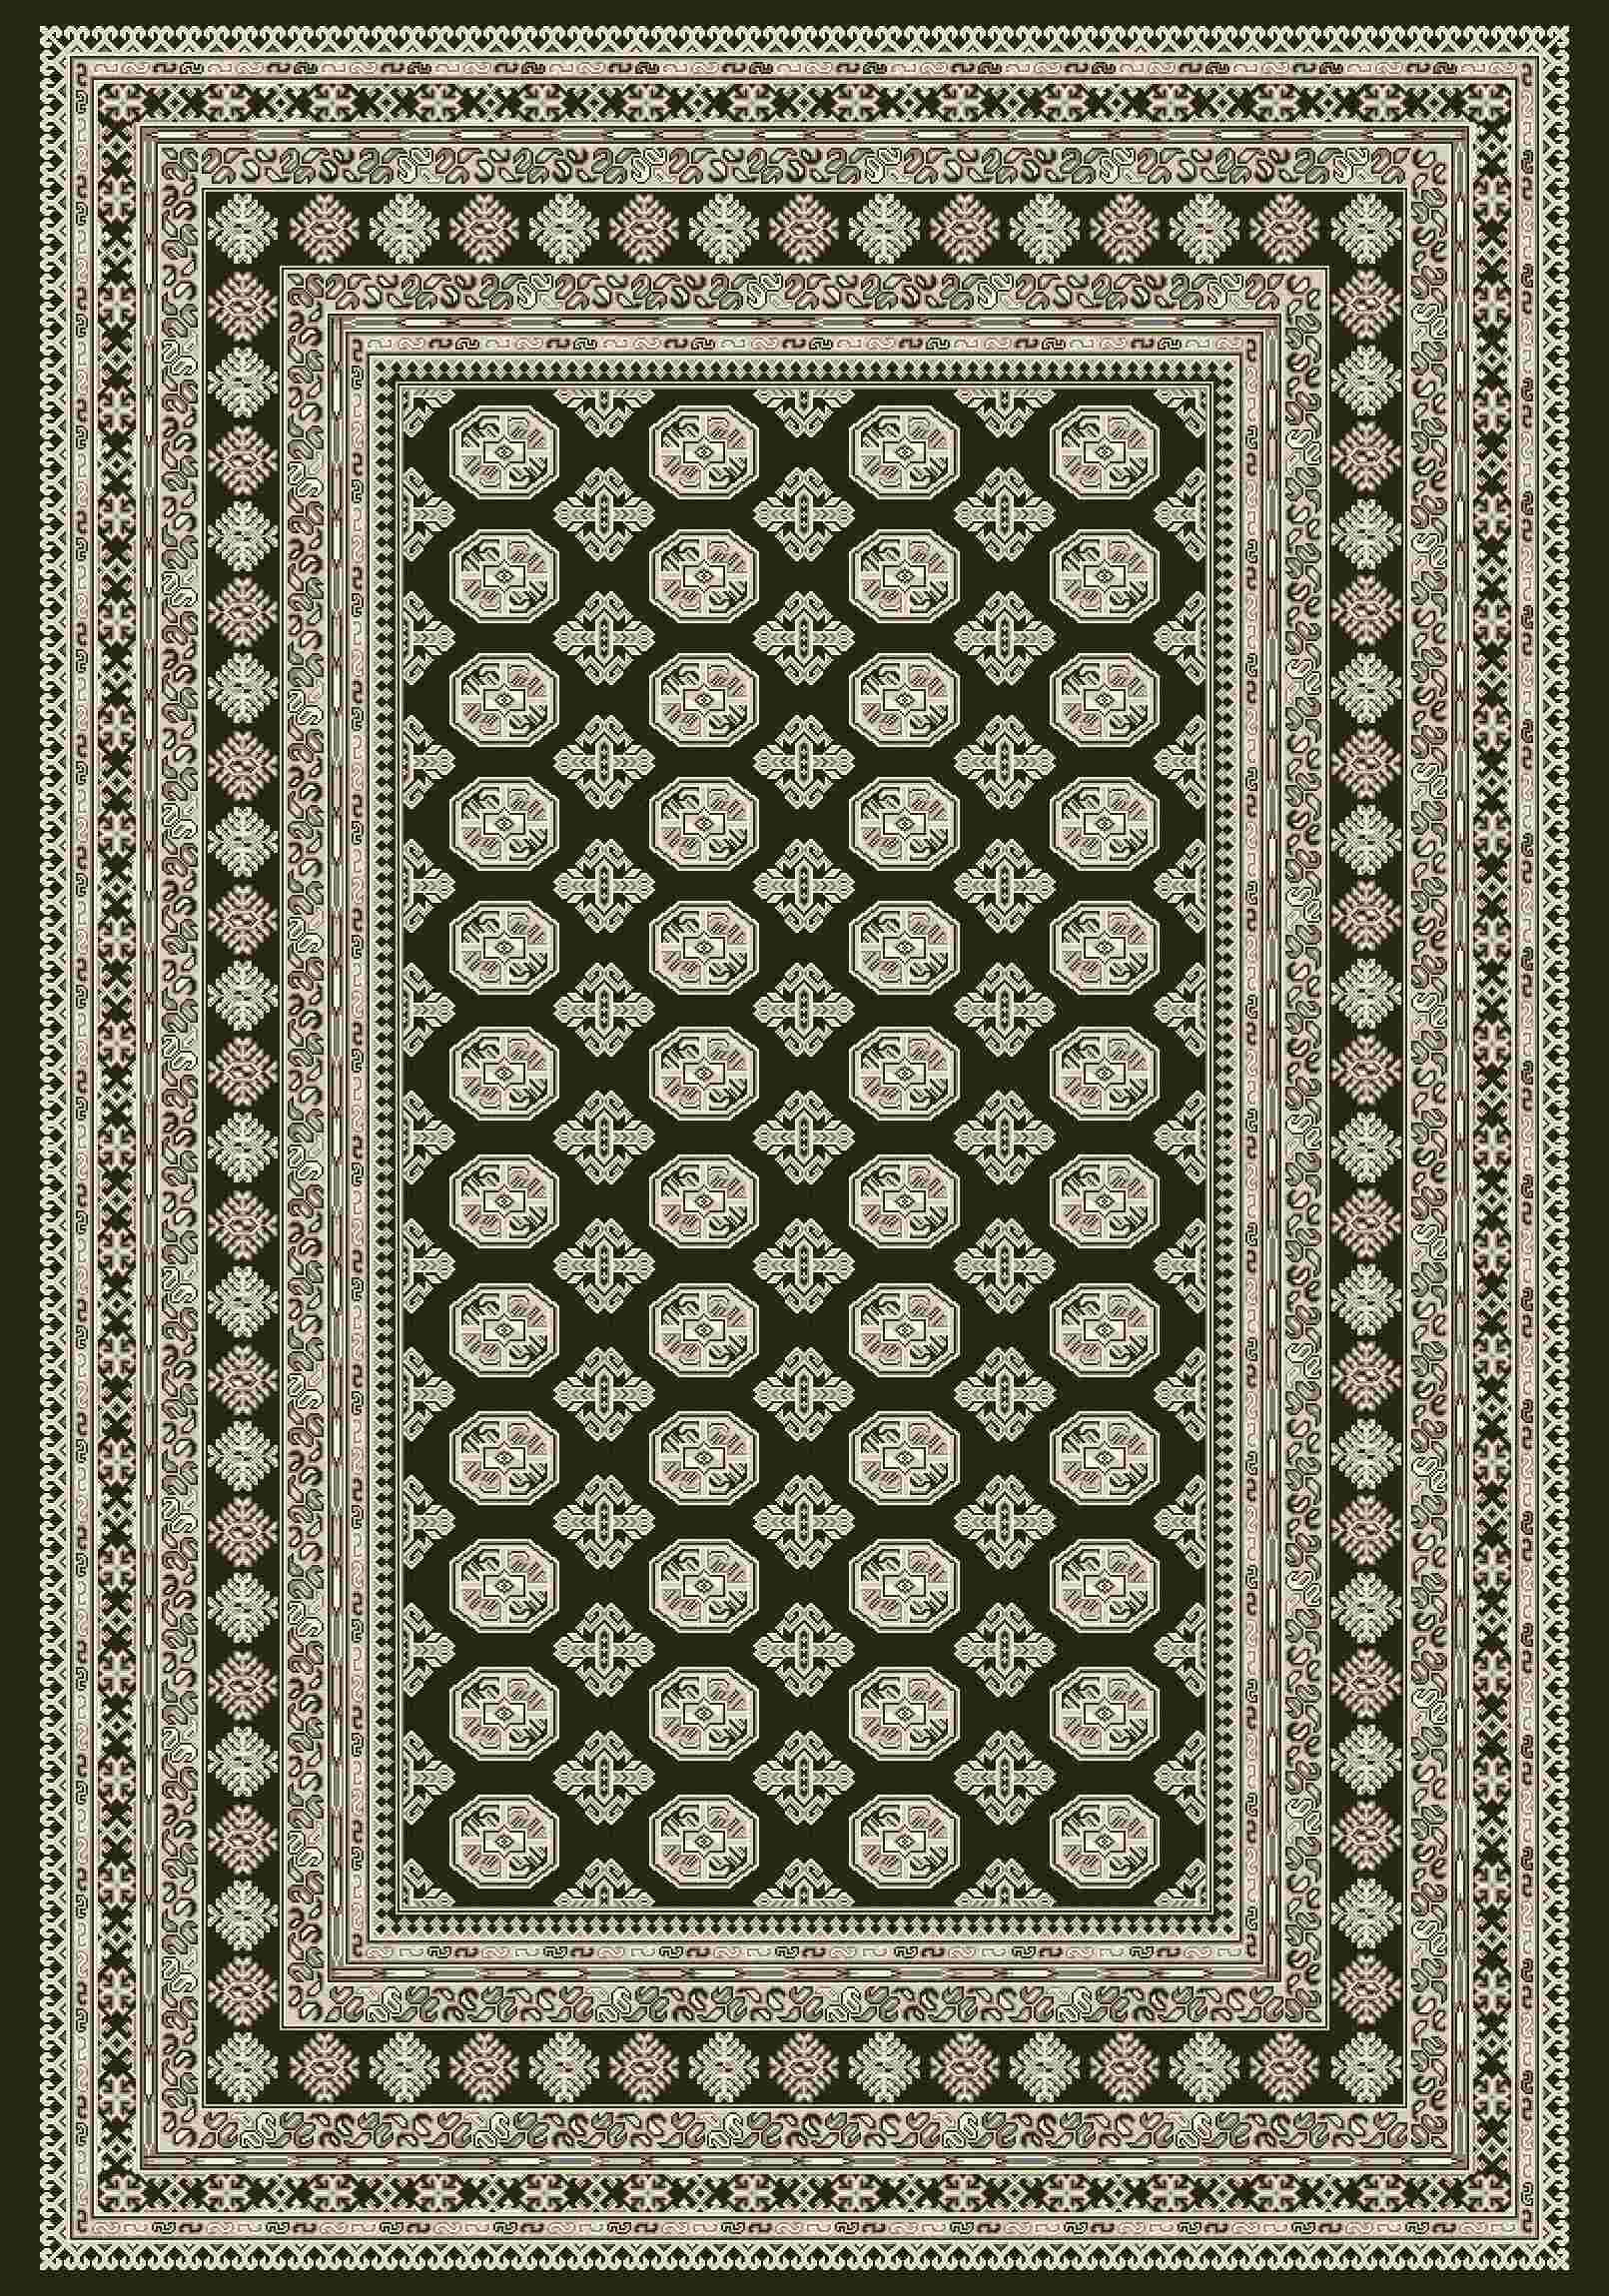 Dynamic Rugs Ancient Garden Classic Charcoal/silver 57102 Area Rug